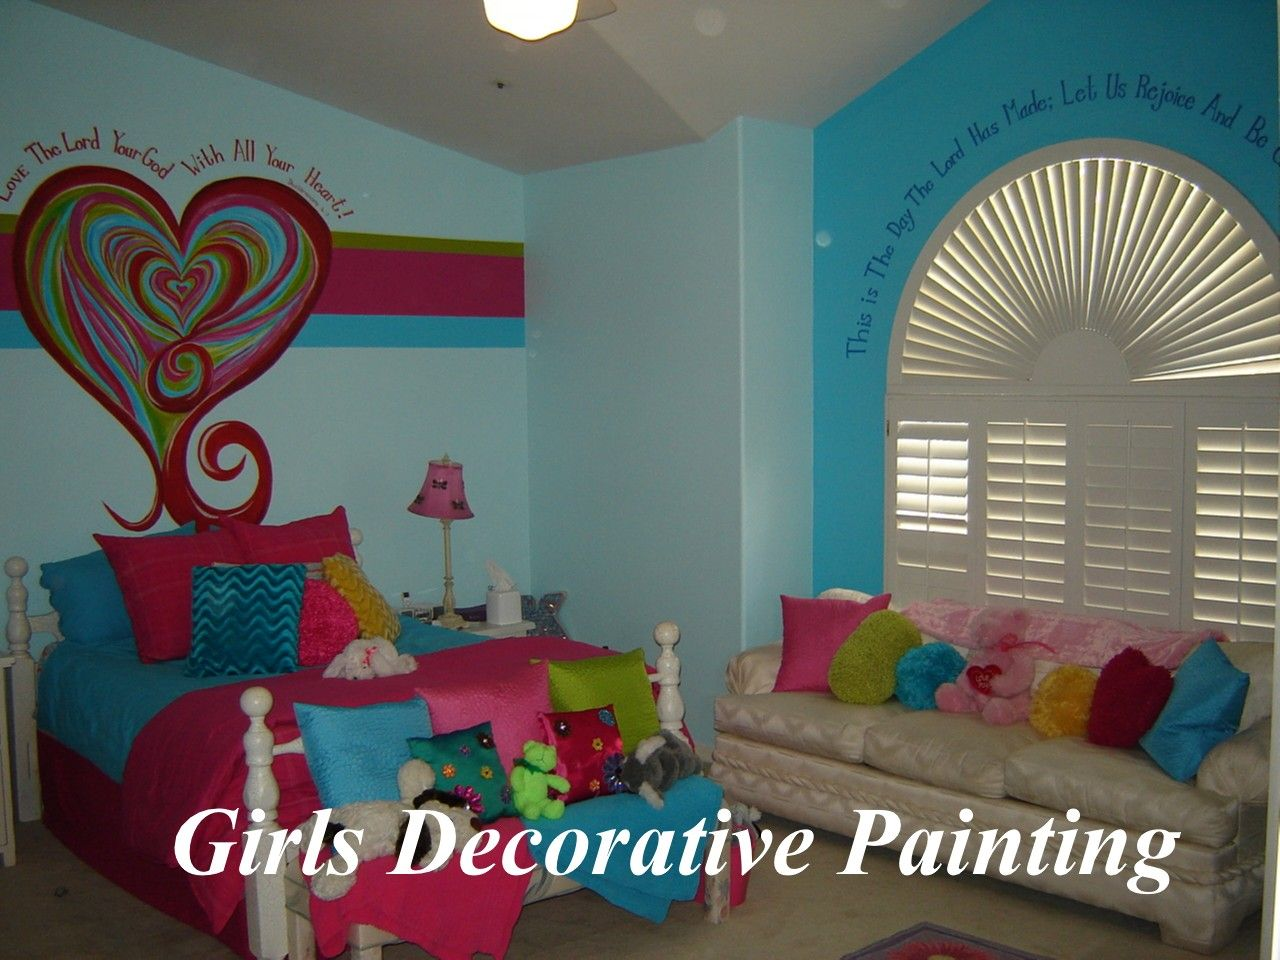 822 best little girl's rooms images on Pinterest | Home, Bedroom ...